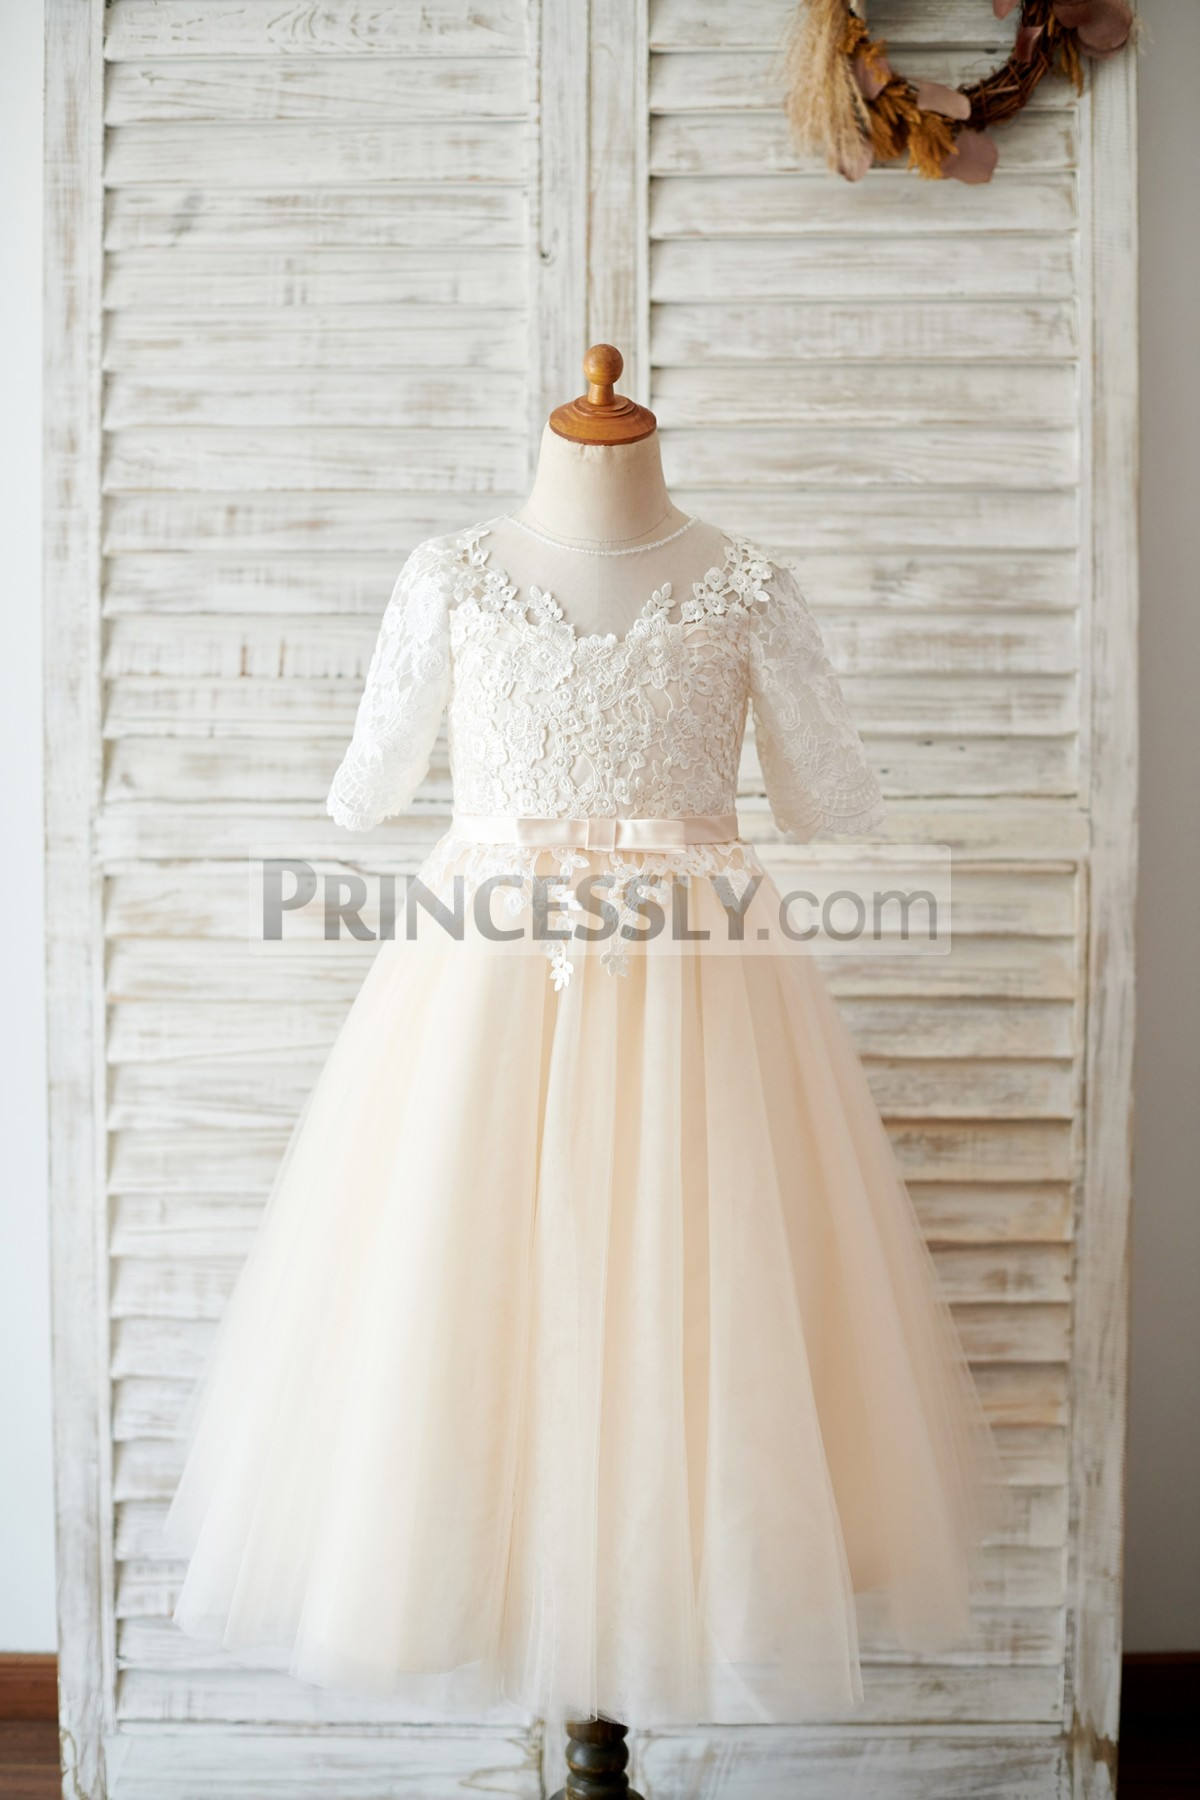 Ivory Lace Appliques Champagne Tulle Flower Girl Dress